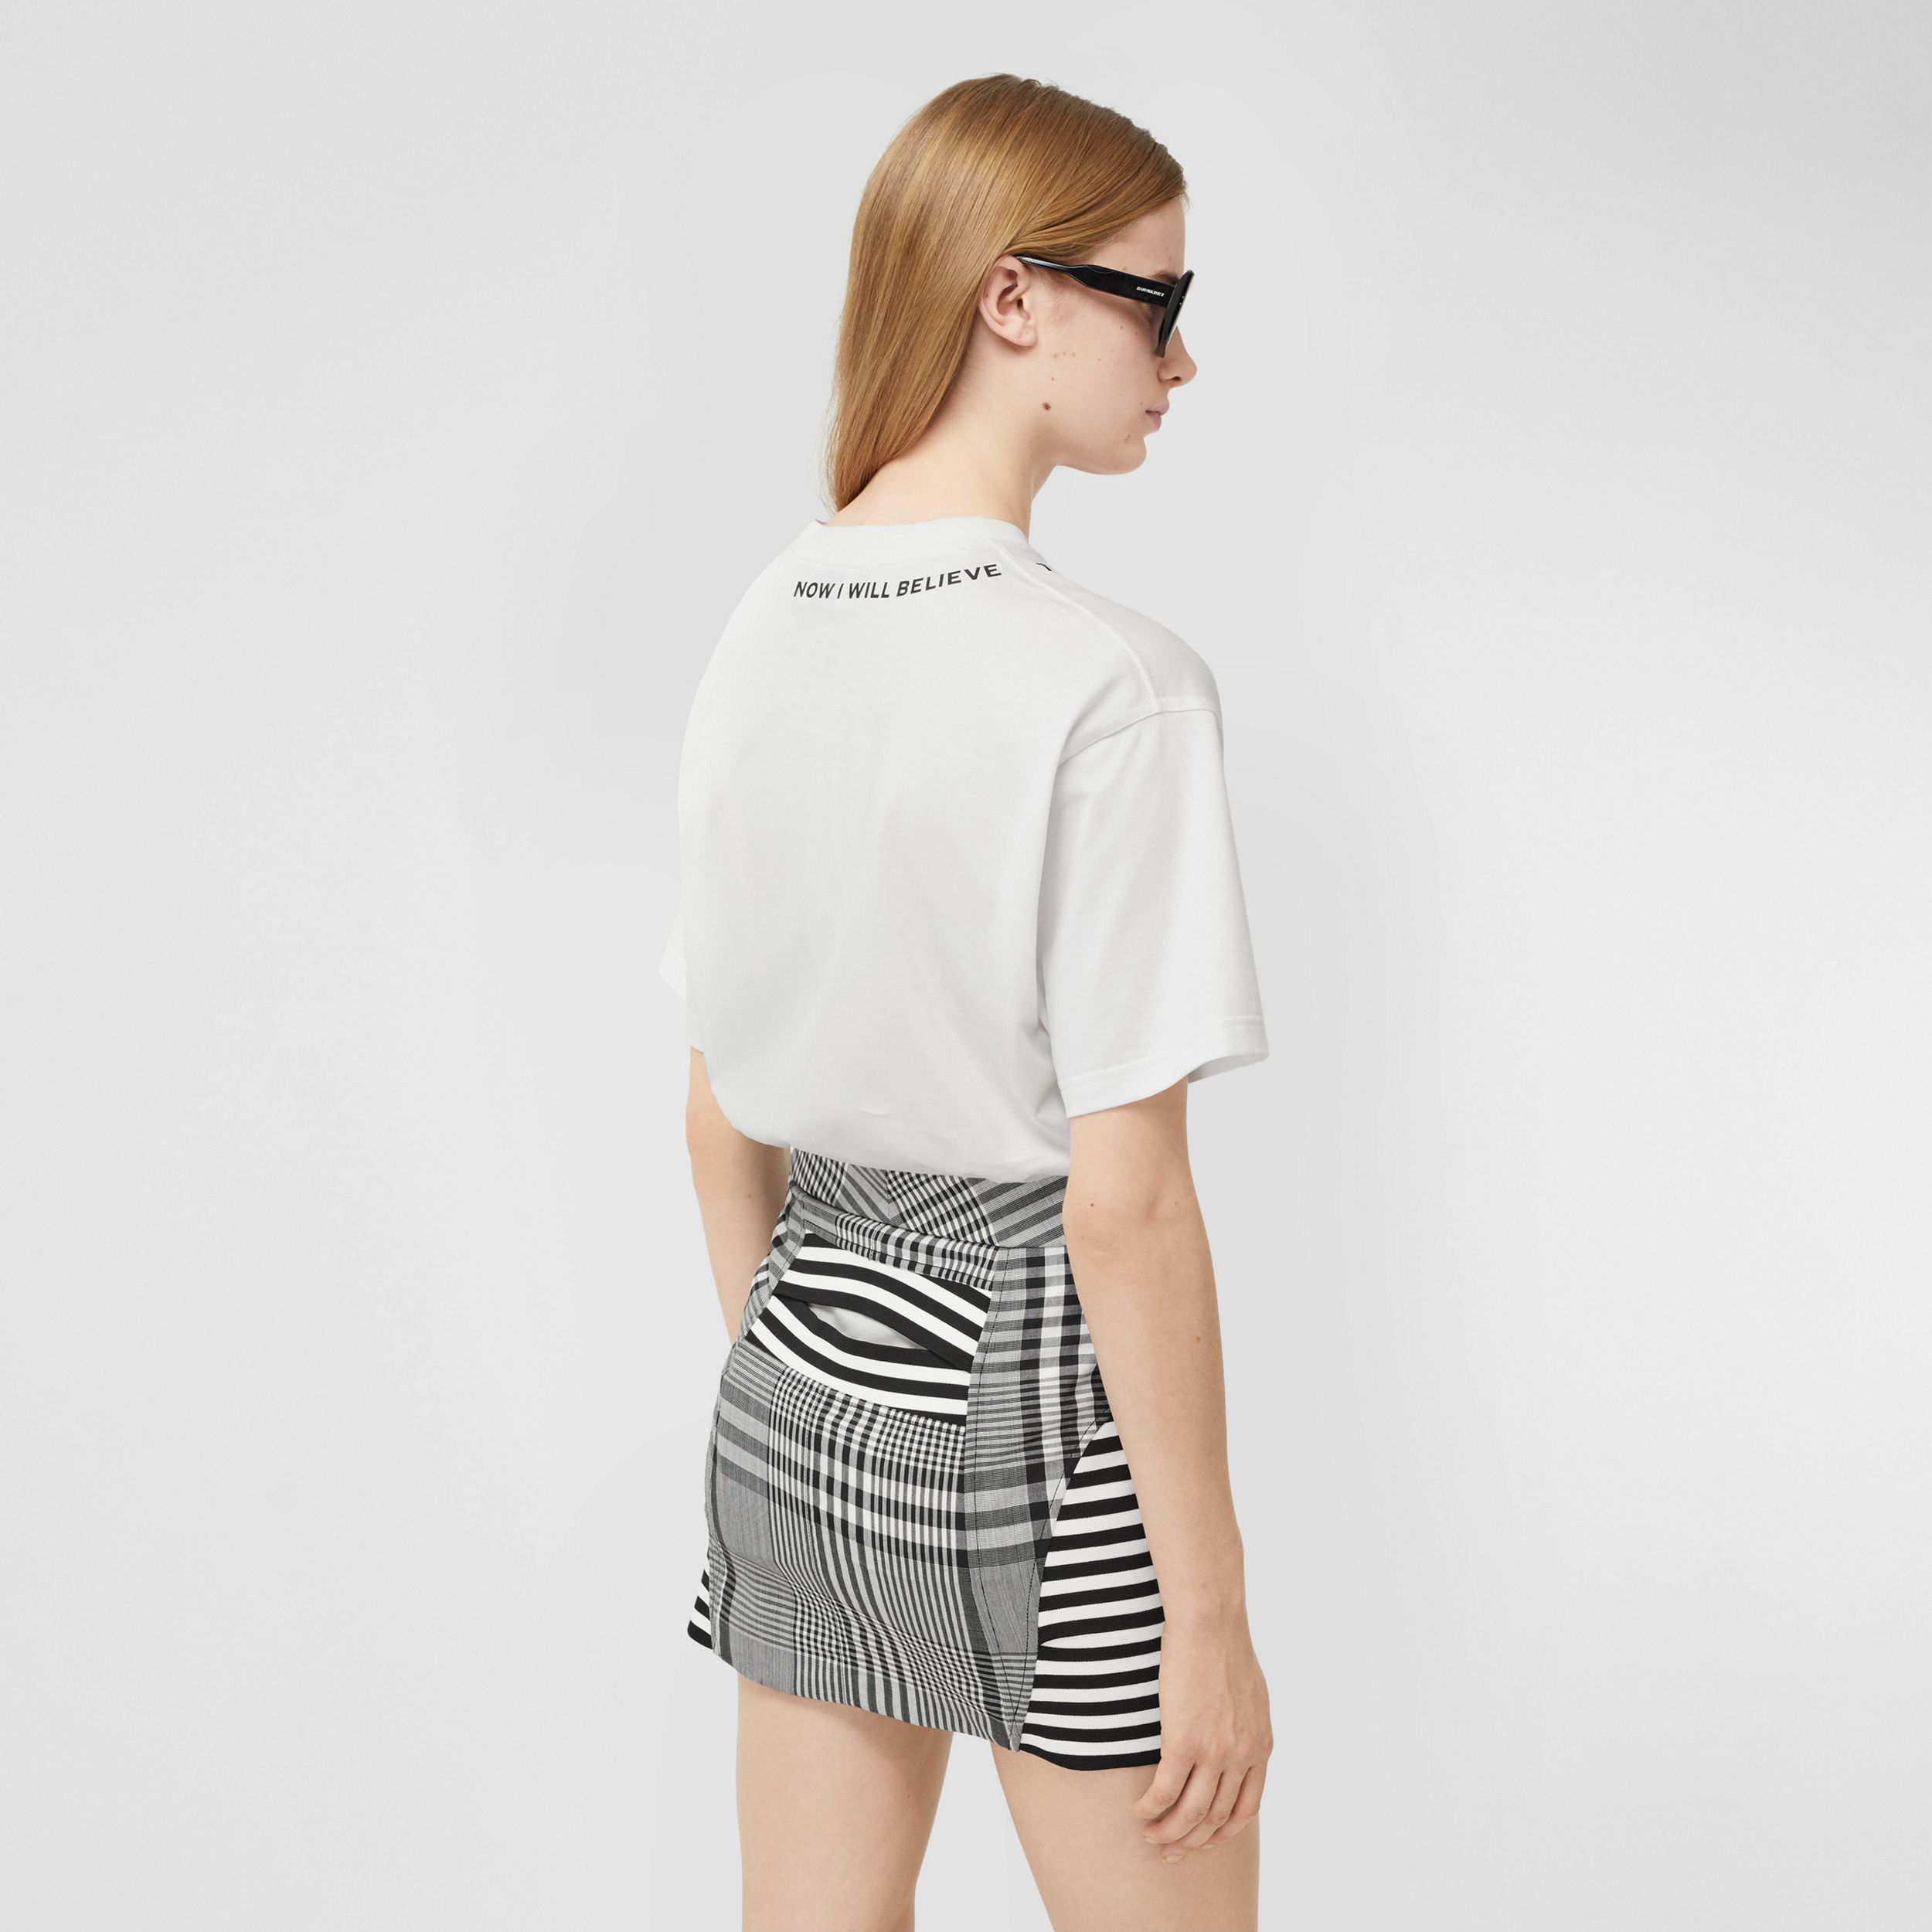 Quote Print Cotton Oversized T-shirt in White - Women | Burberry - 3